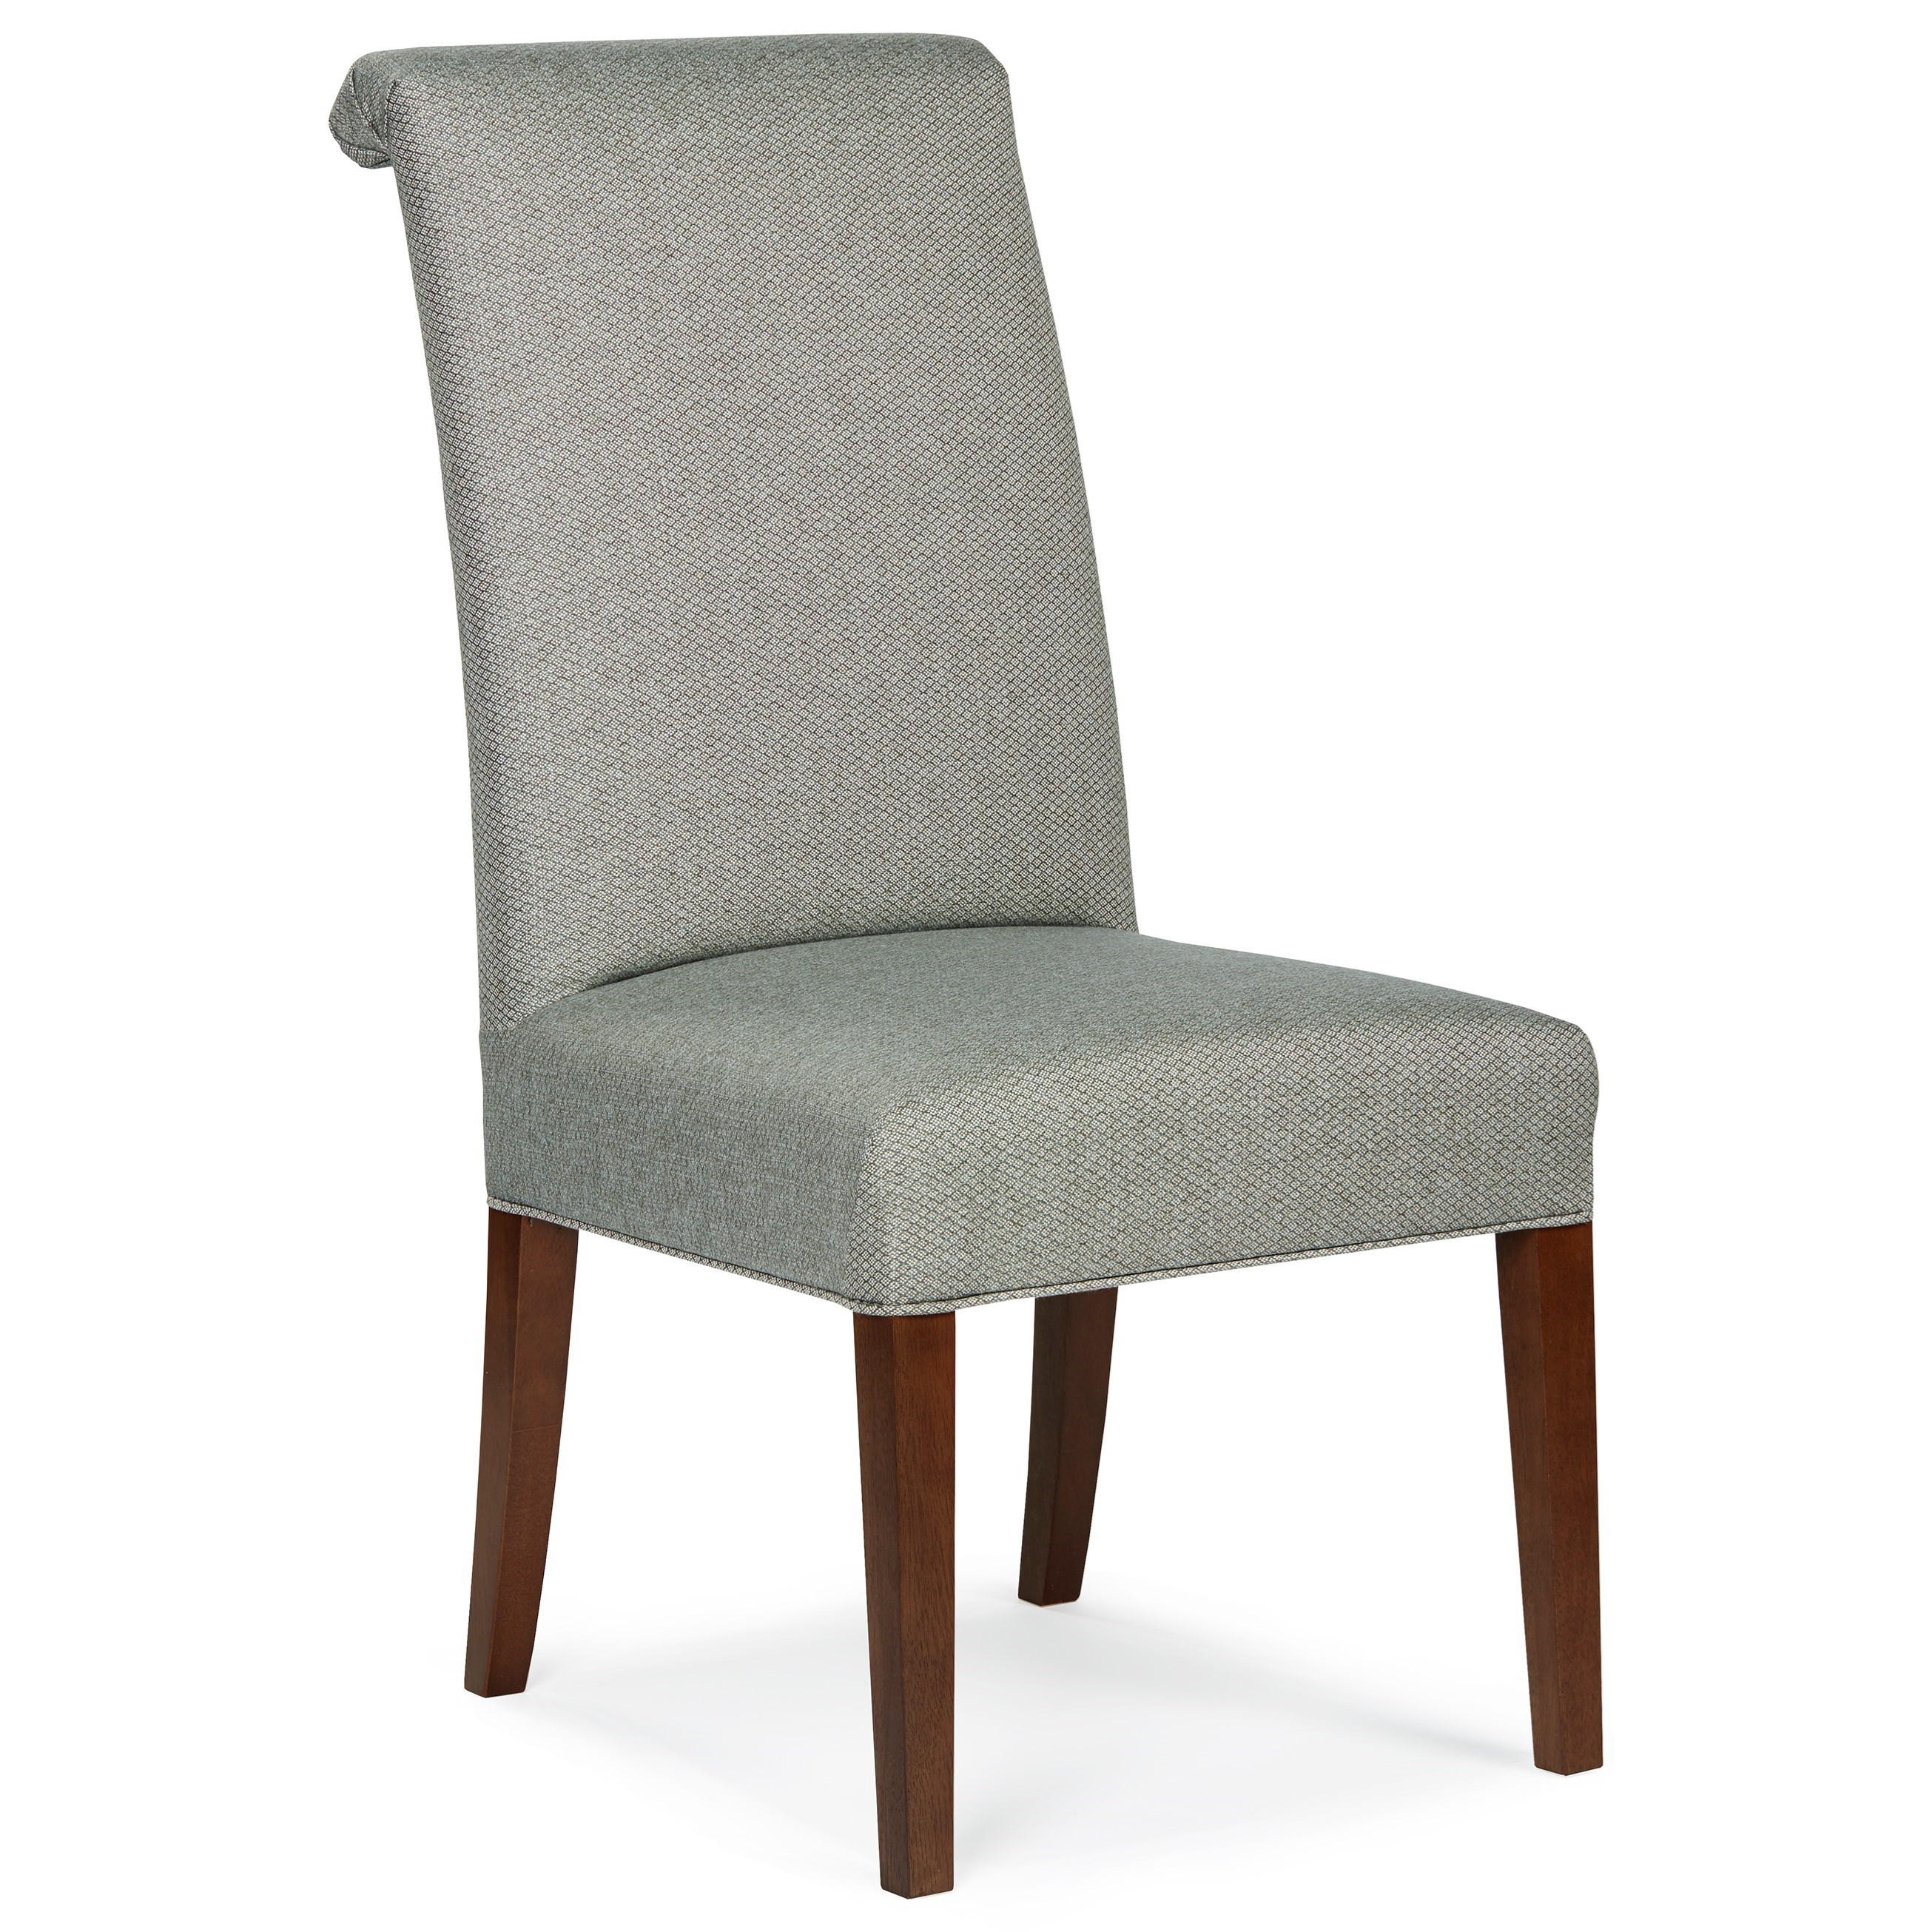 Sebree Dining Chair by Best Home Furnishings at Baer's Furniture